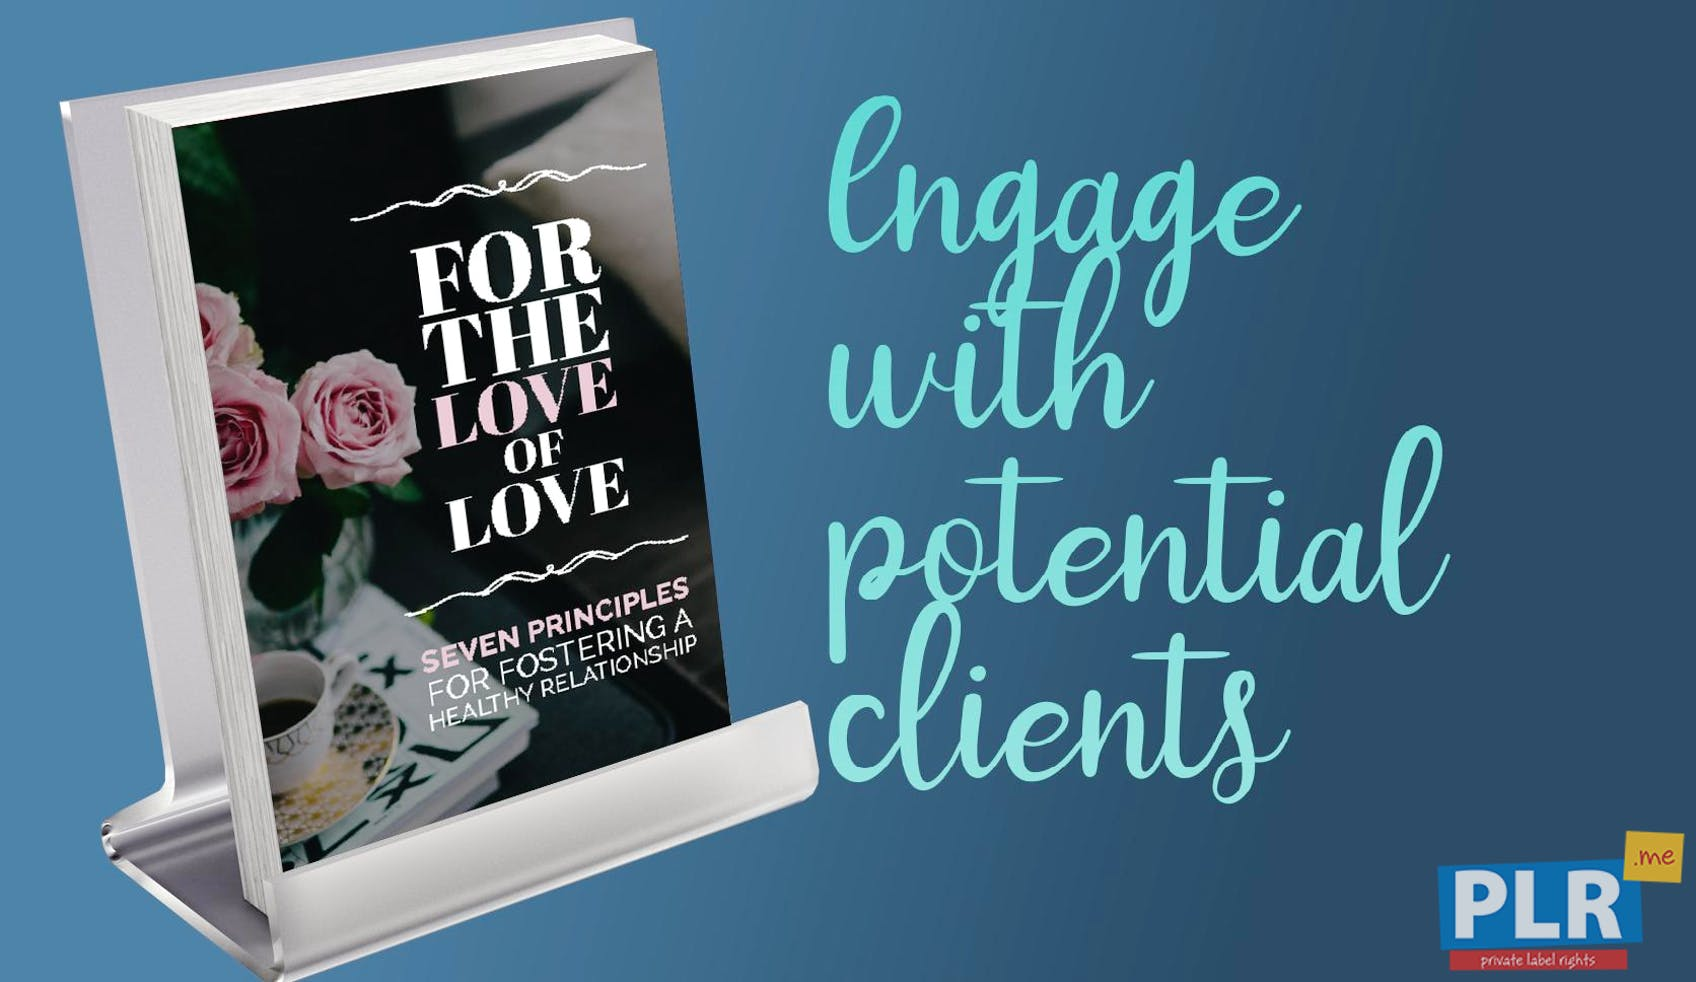 For The Love Of Love Seven Principles For Fostering A Healthy Relationship